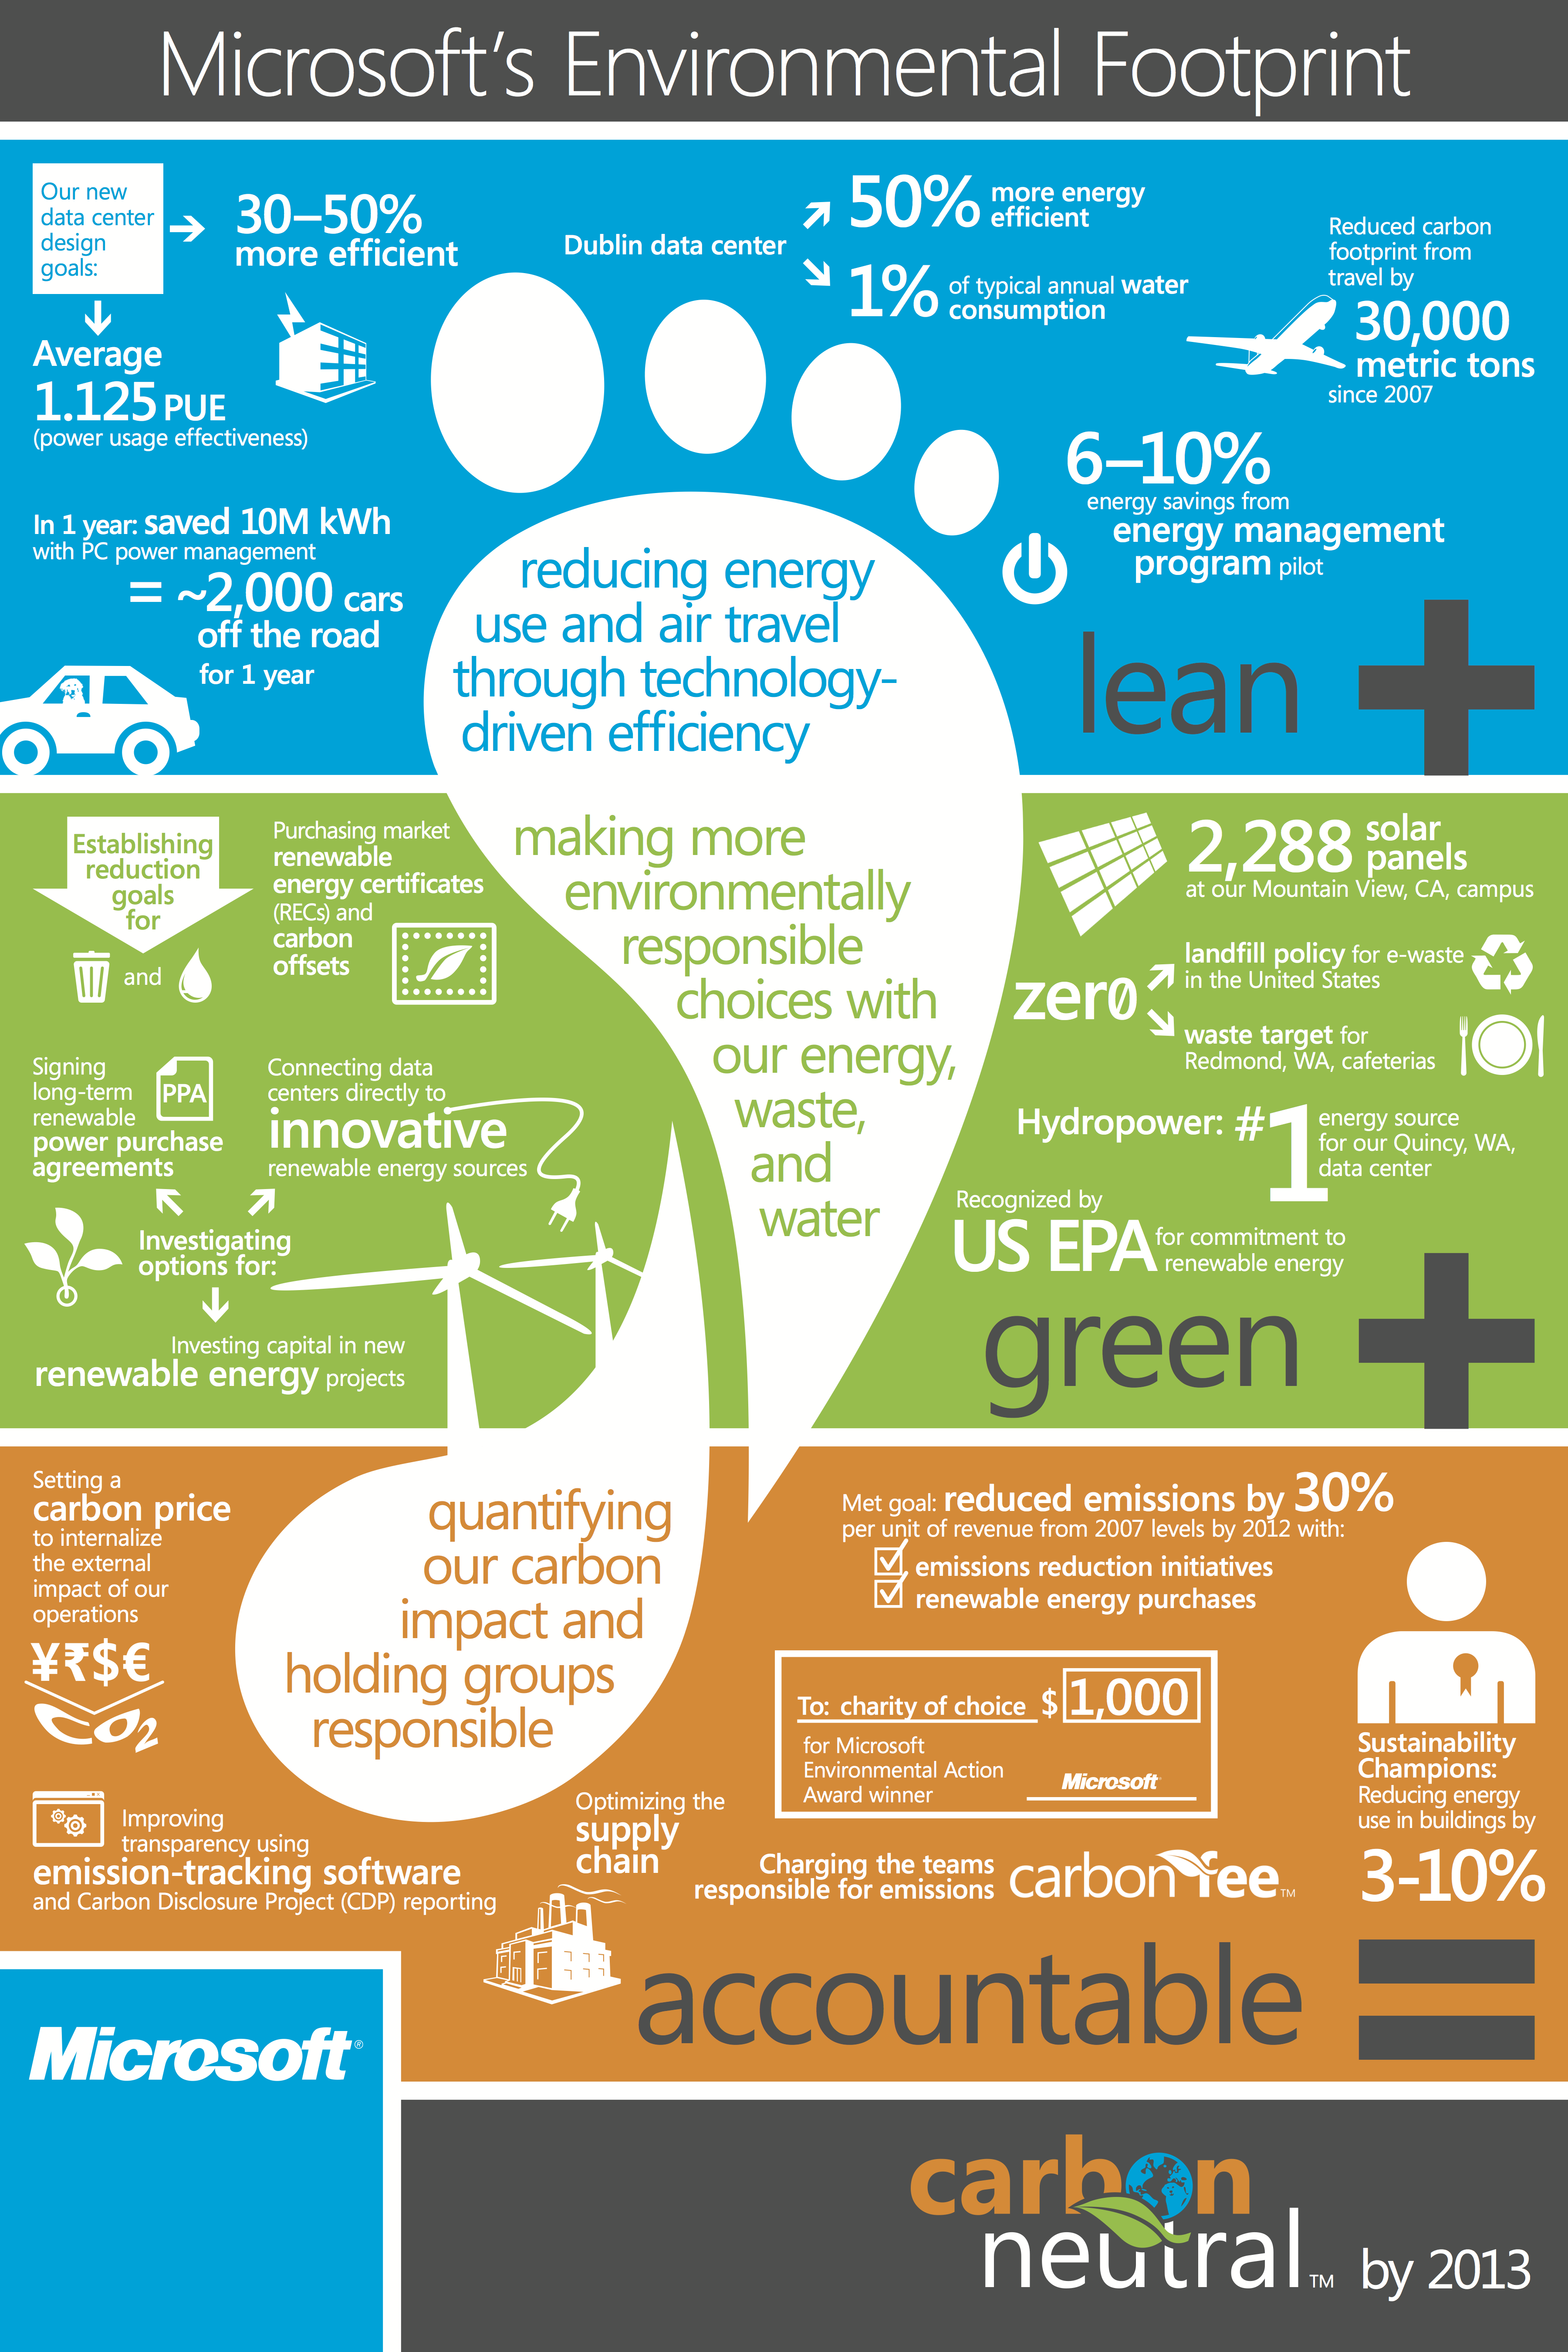 Microsoft's Environmental Footprint Infographic So